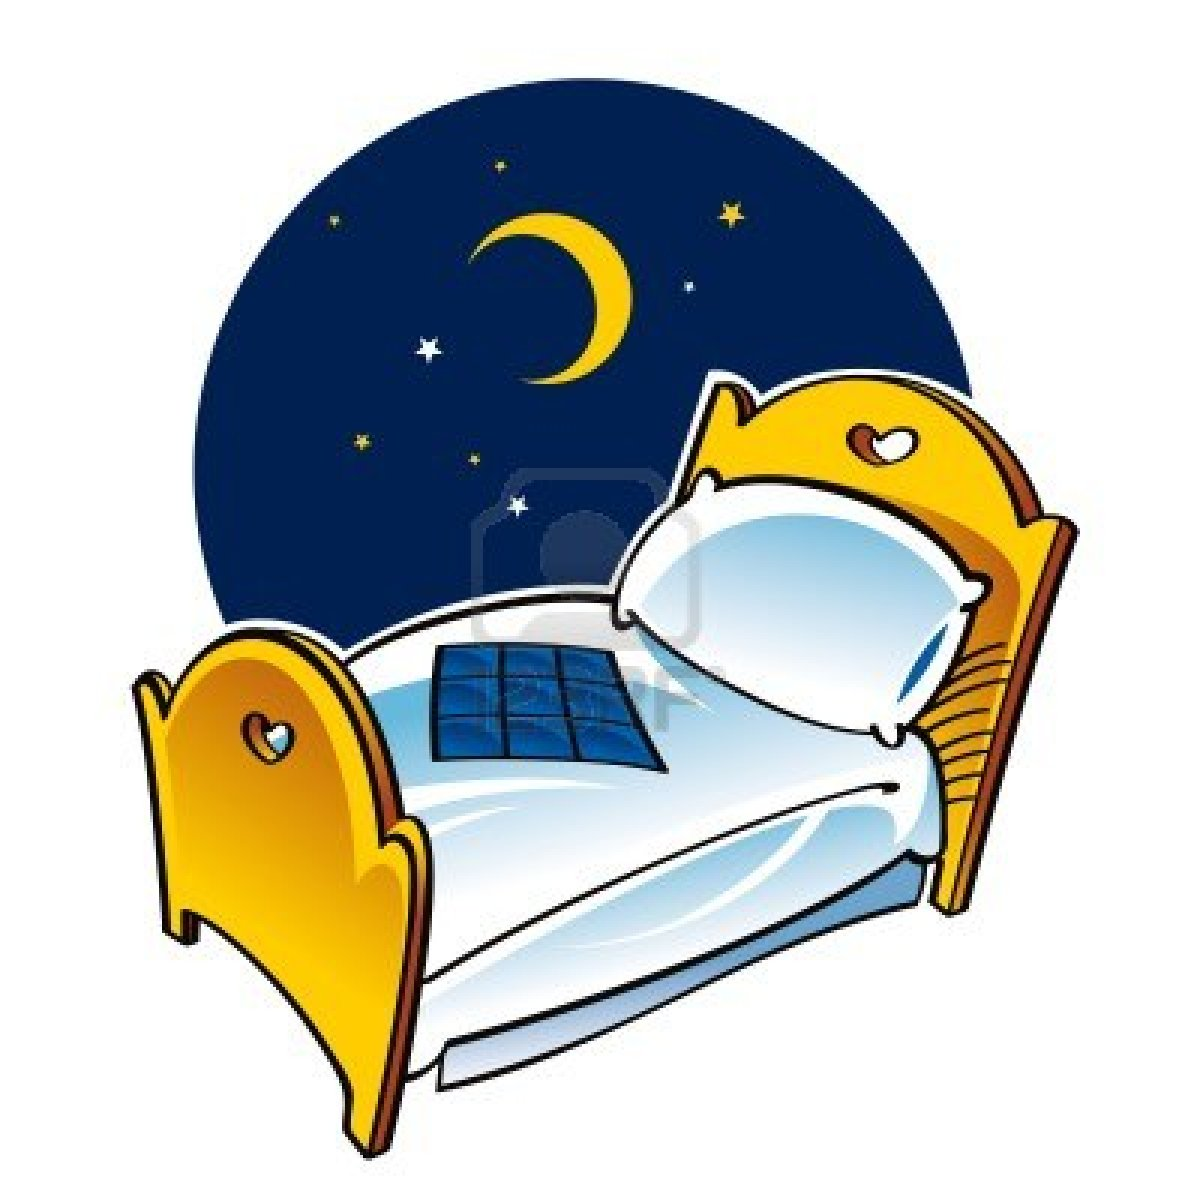 Asleep In Bed Clipart.